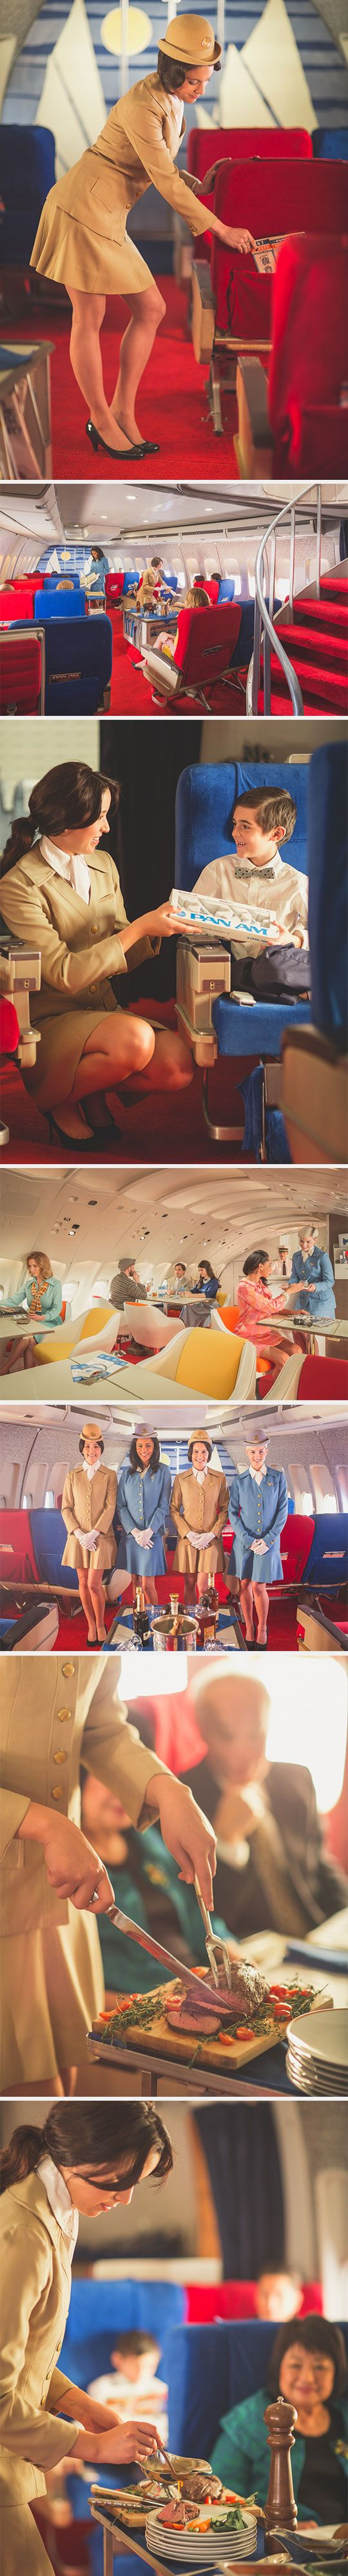 Pan Am in the 1960's.  My dad worked for the airlines, and I remember being bumped up to first class on a 747 several times.  Prime rib, little glass salt and pepper shakers, hot fudge sundaes made to order, and steaming towels to wash your hands and face.  To get anywhere near that level of service today, I'd have to mortgage my house.